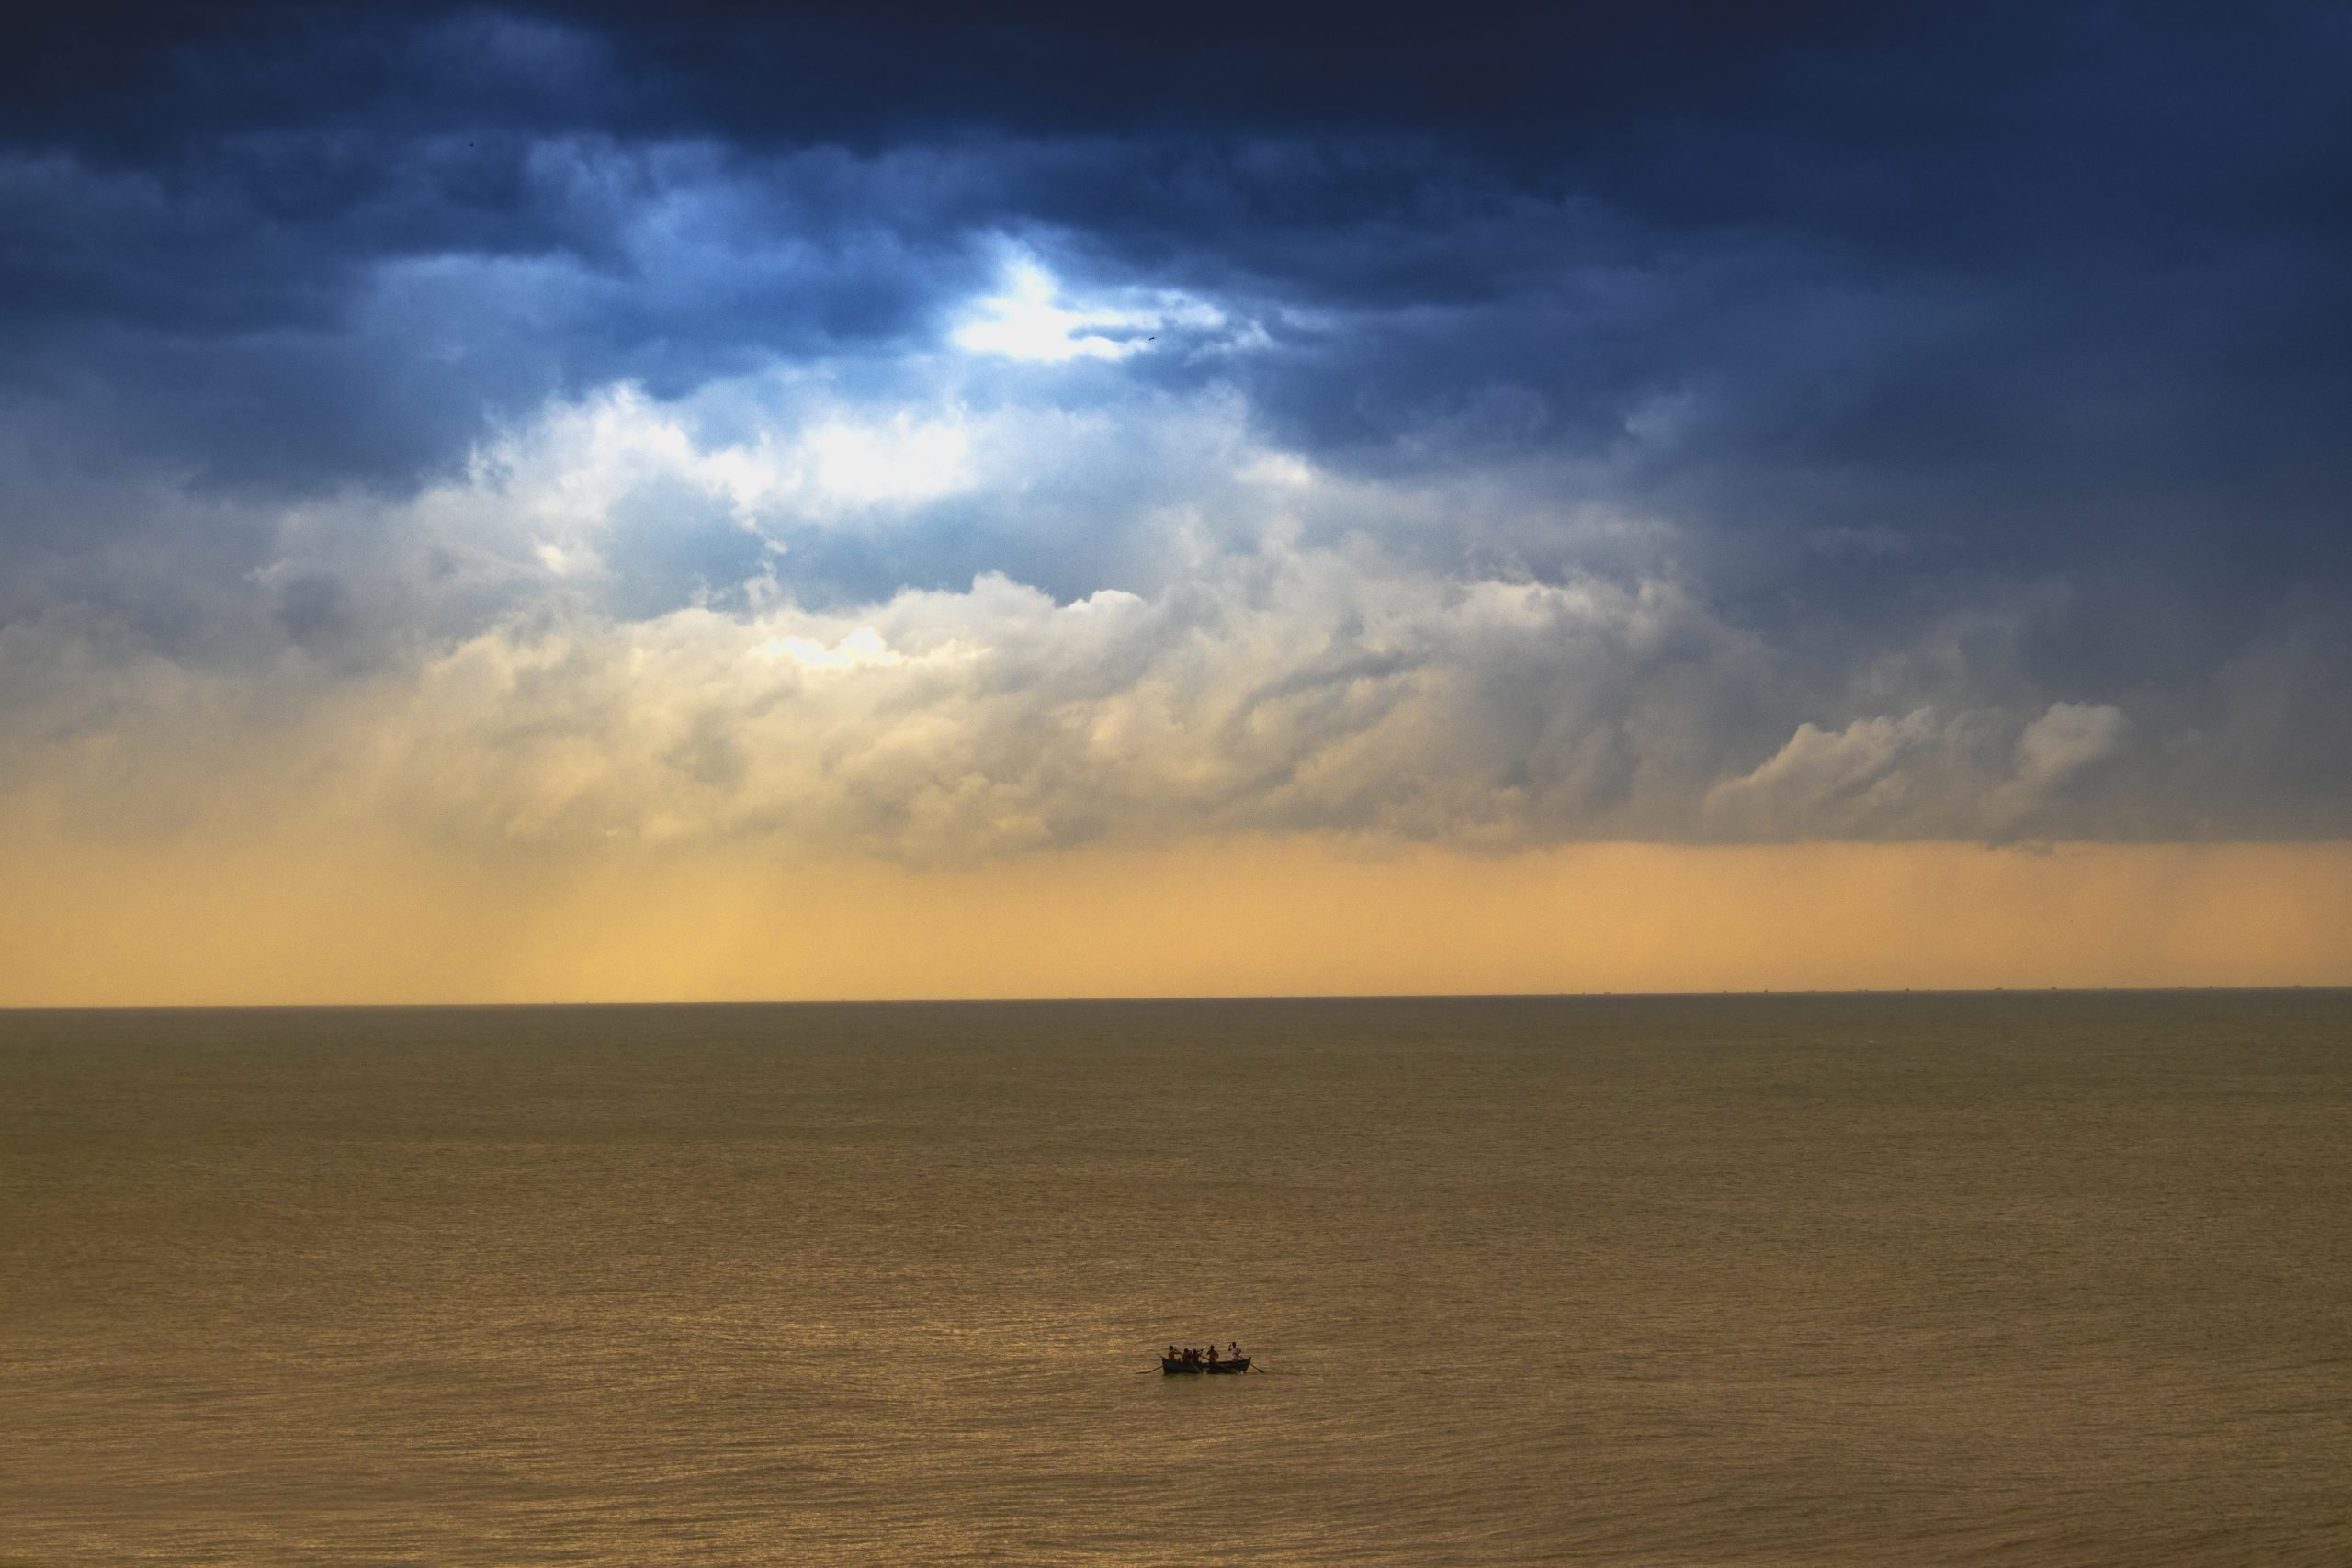 Boat in the Sea on a Cloudy Day